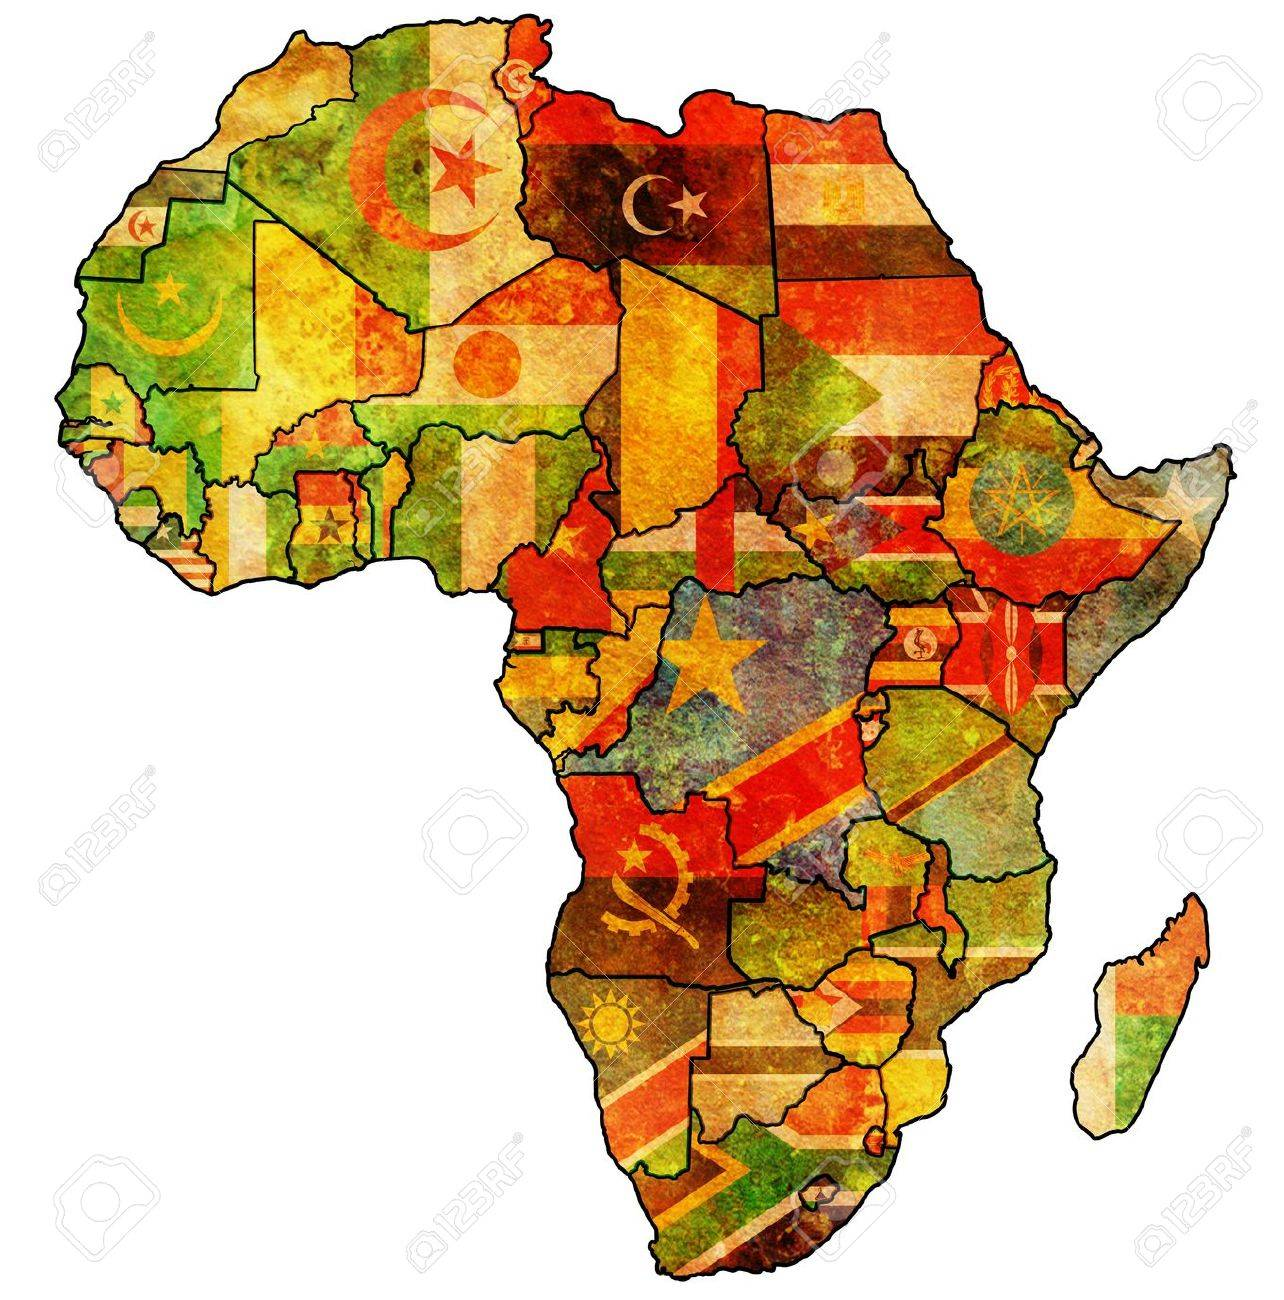 African Union Map.African Union On Actual Vintage Political Map Of Africa With